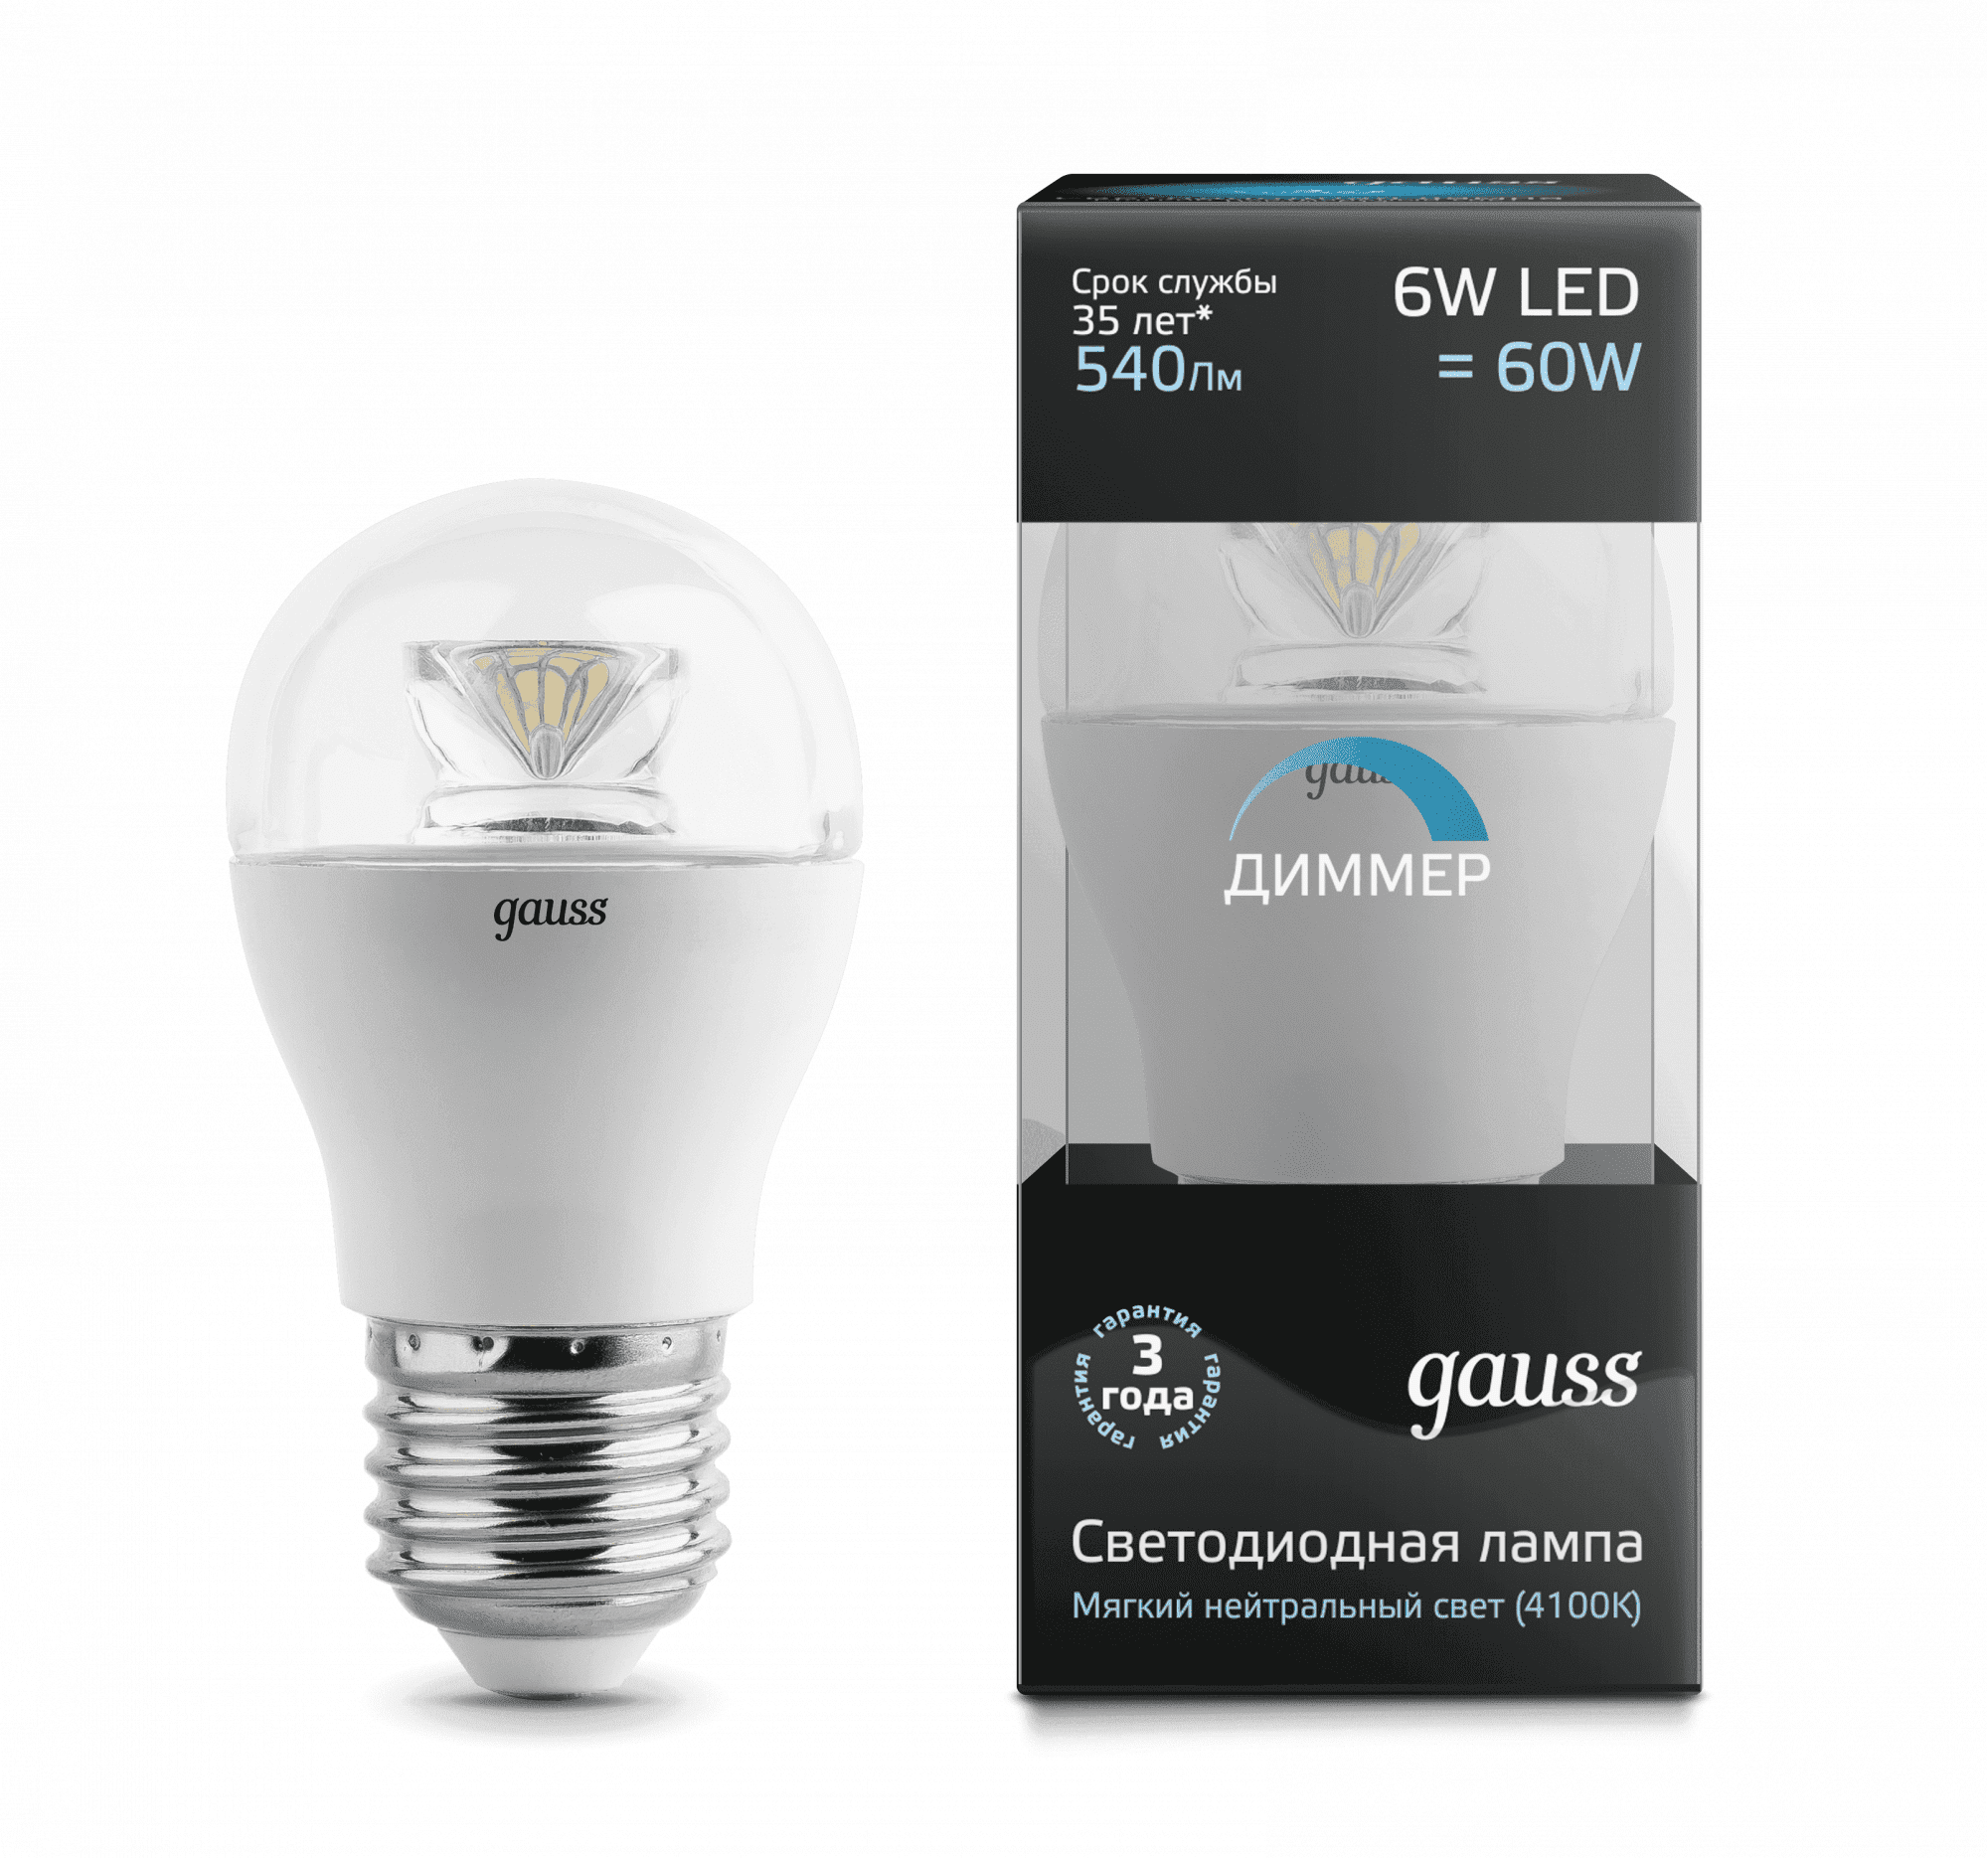 Gauss LED Globe-dim Crystal Clear E27 6W 4100K диммируемая 1/10/50 арт. 105202206-D